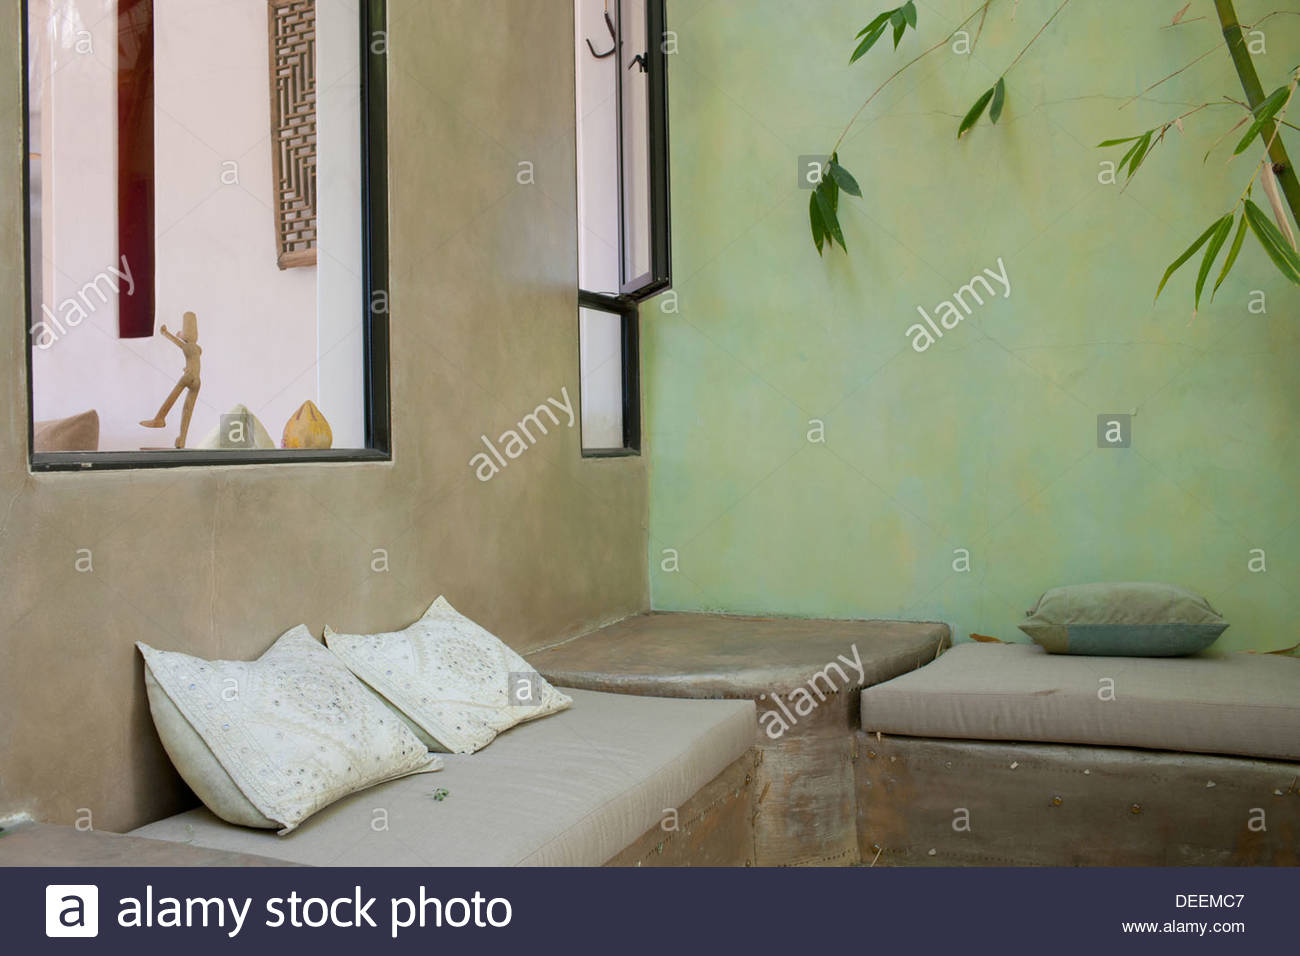 Outdoor seating area with bamboo - Stock Image